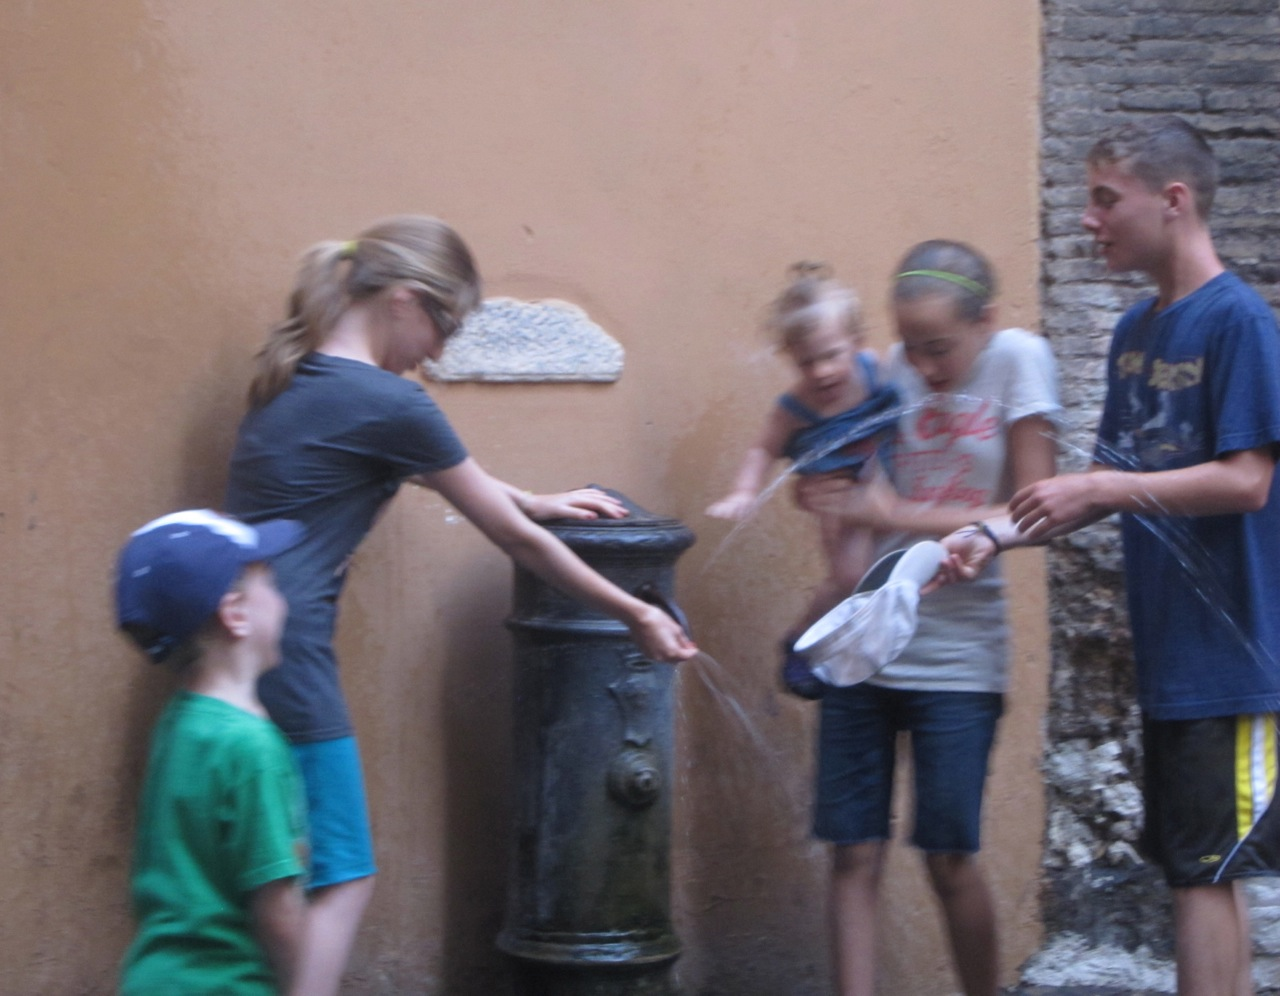 jewish ghetto rome italy share your itinerary realfamilytrips.com